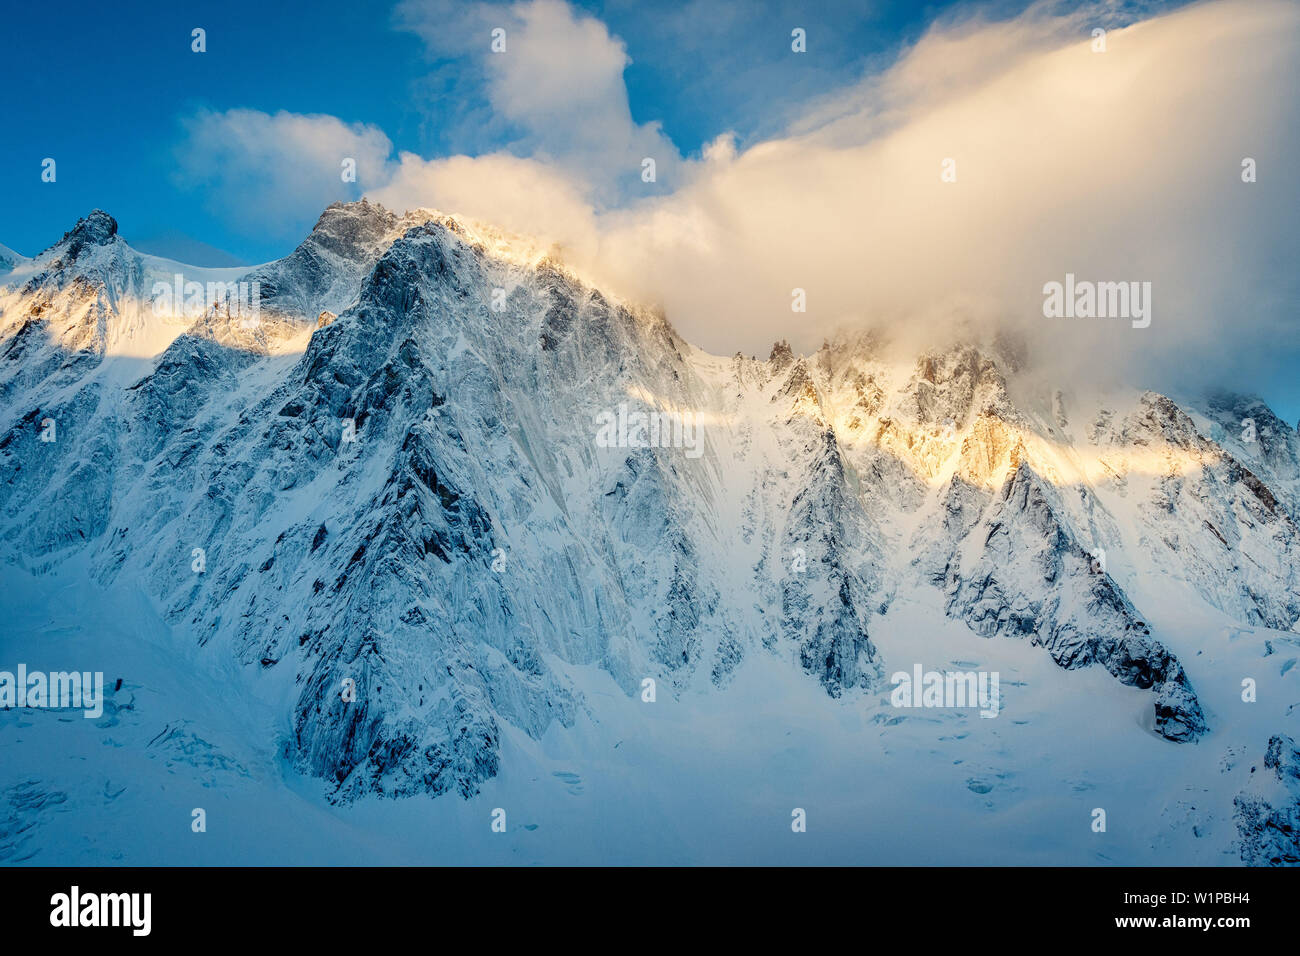 Aiguille Verte during the first light of the day, fresh snow, Chamonix, Haute-Savoie, France - Stock Image